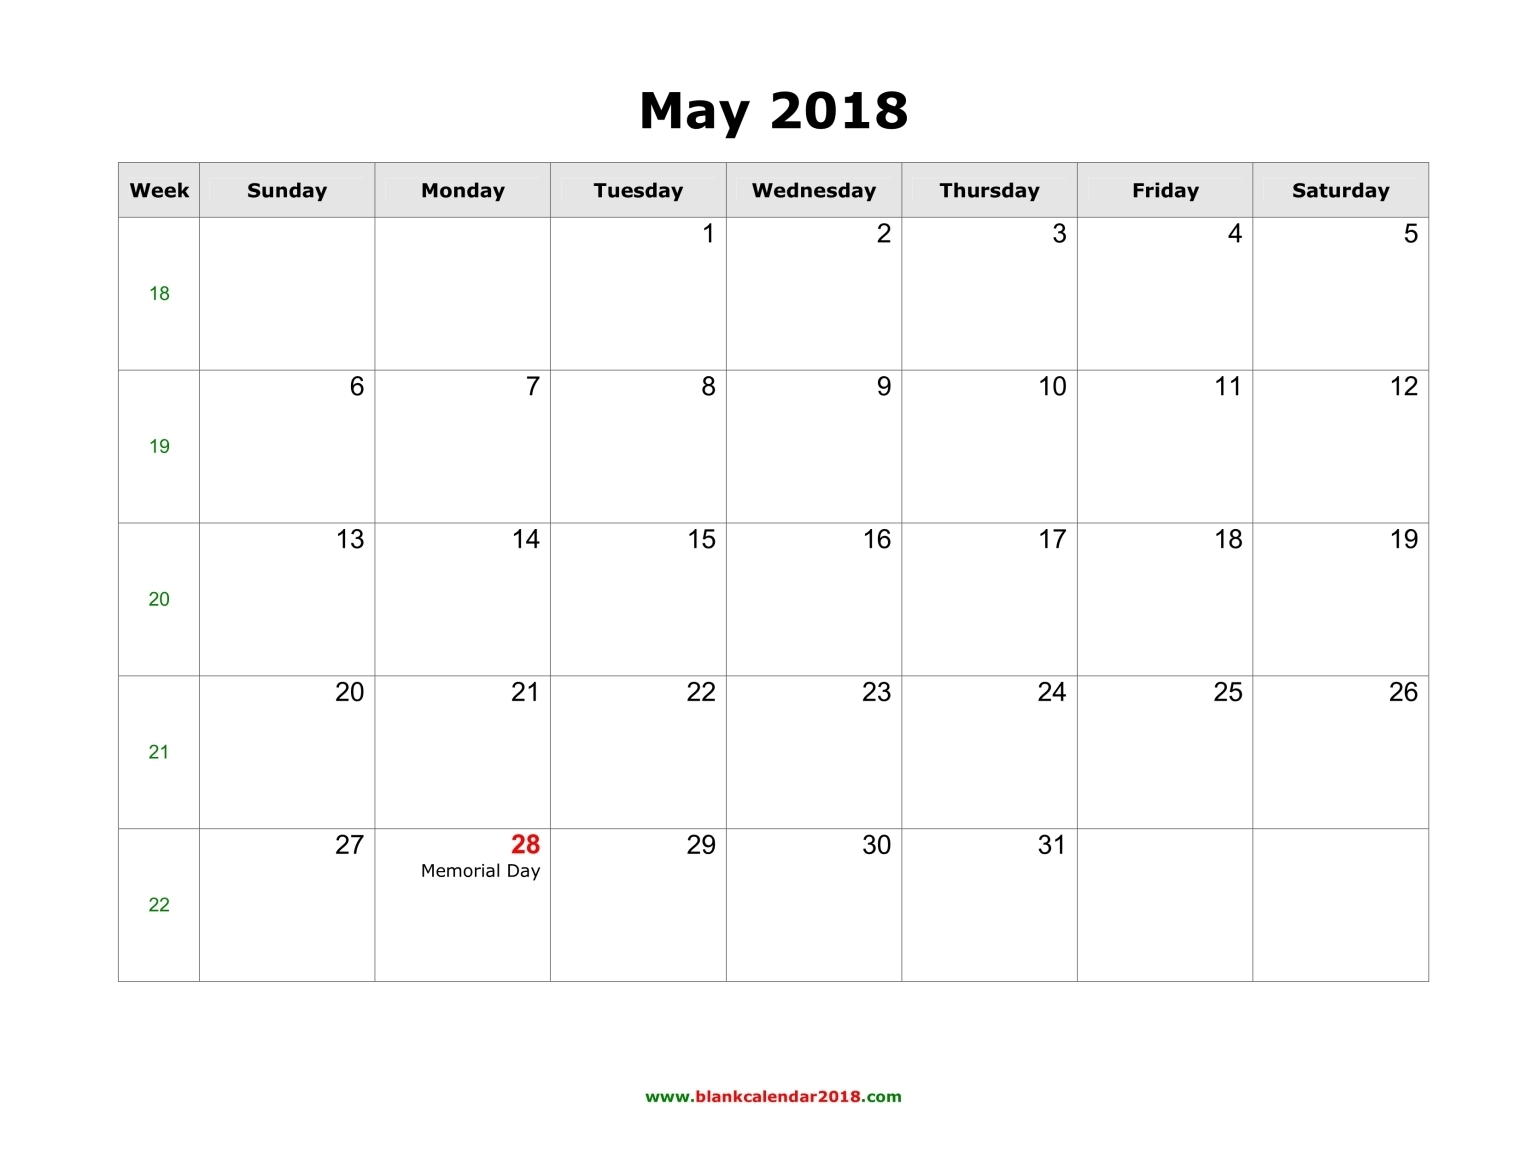 May Calendar With Holidays : Blank calendar for may